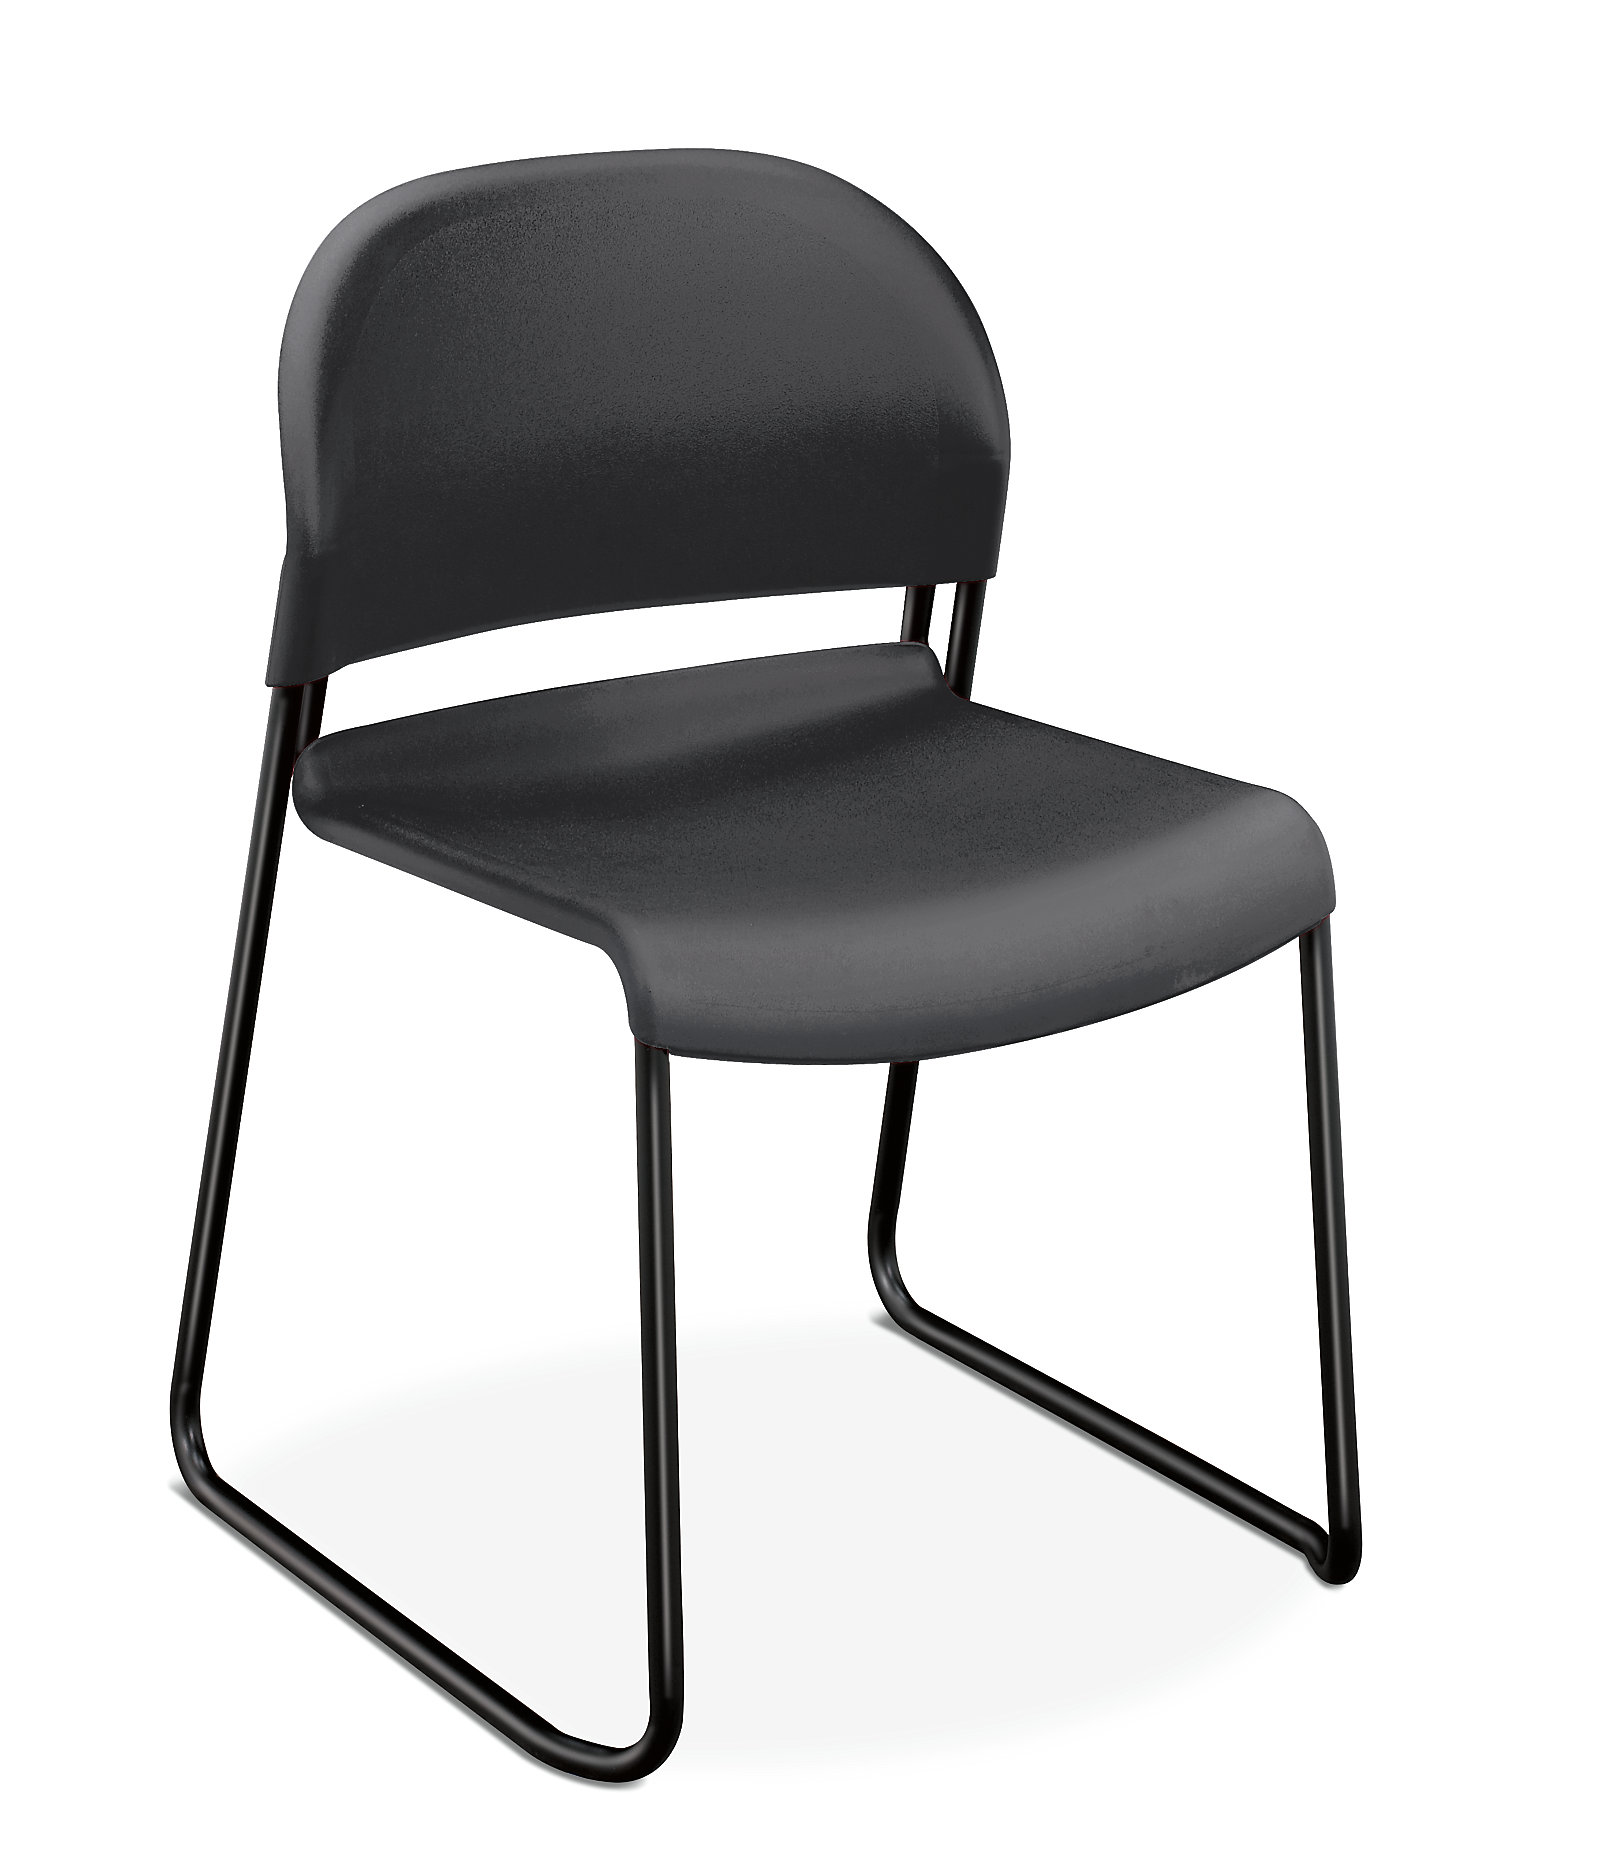 GuestStacker High Density Stacking Chair H4031